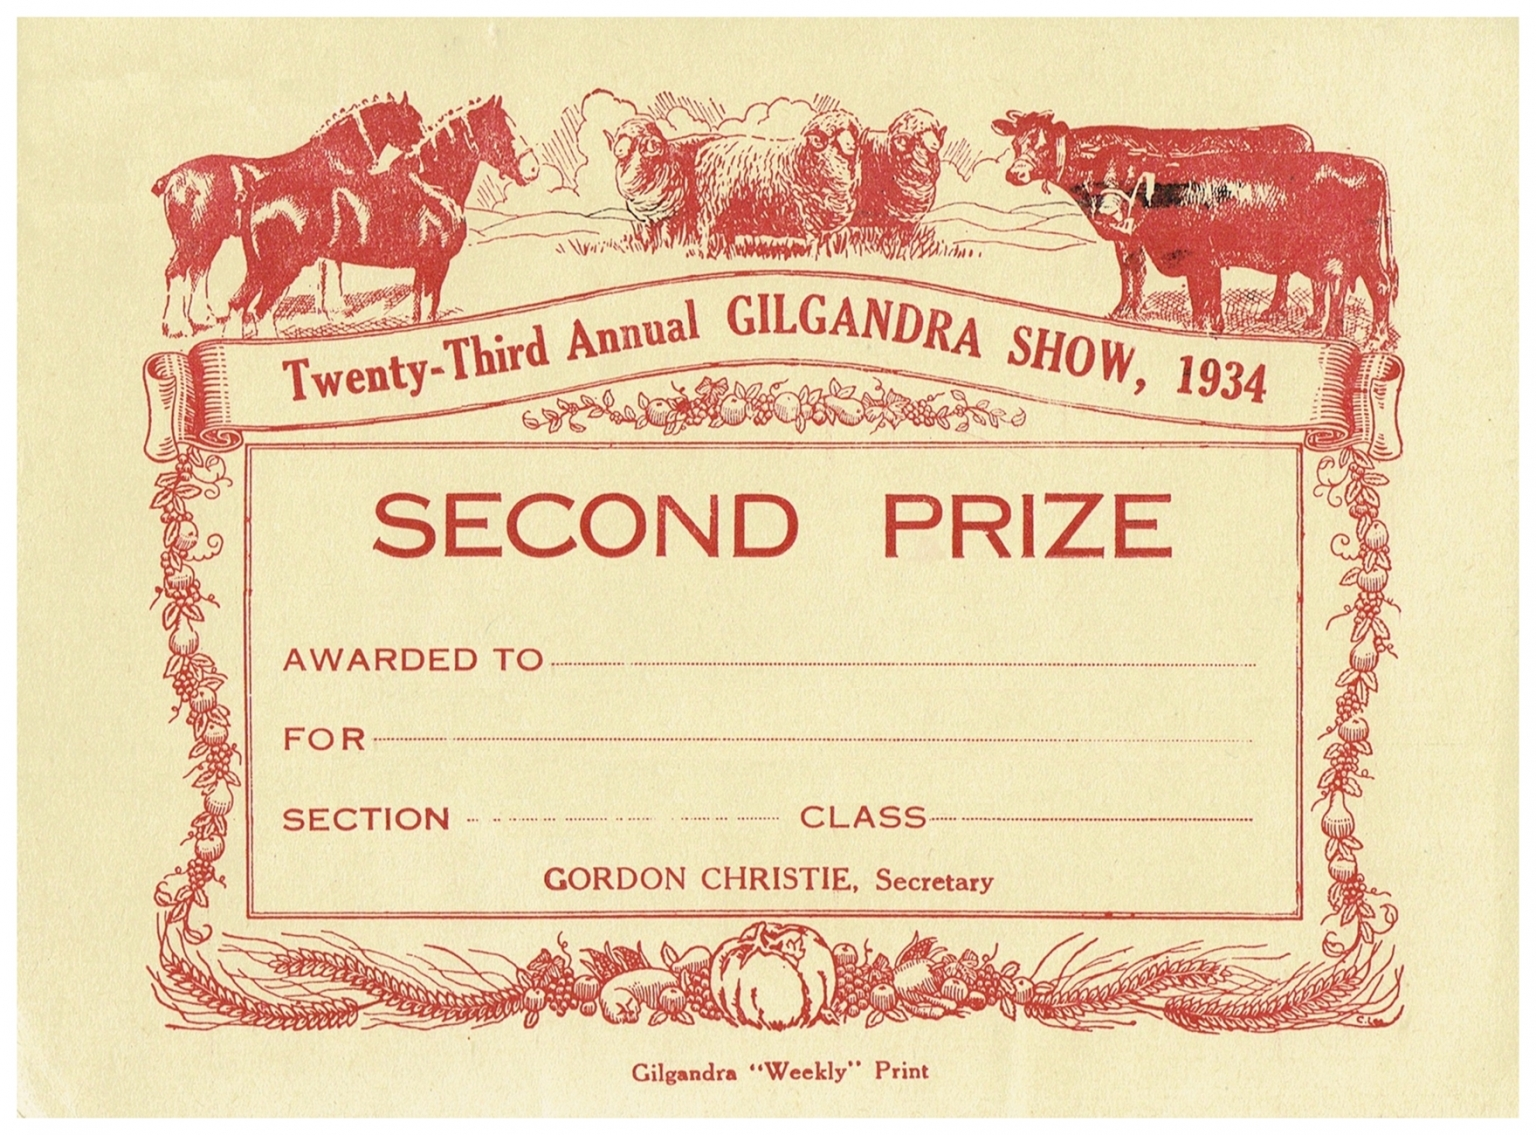 1934 Second Prize Card